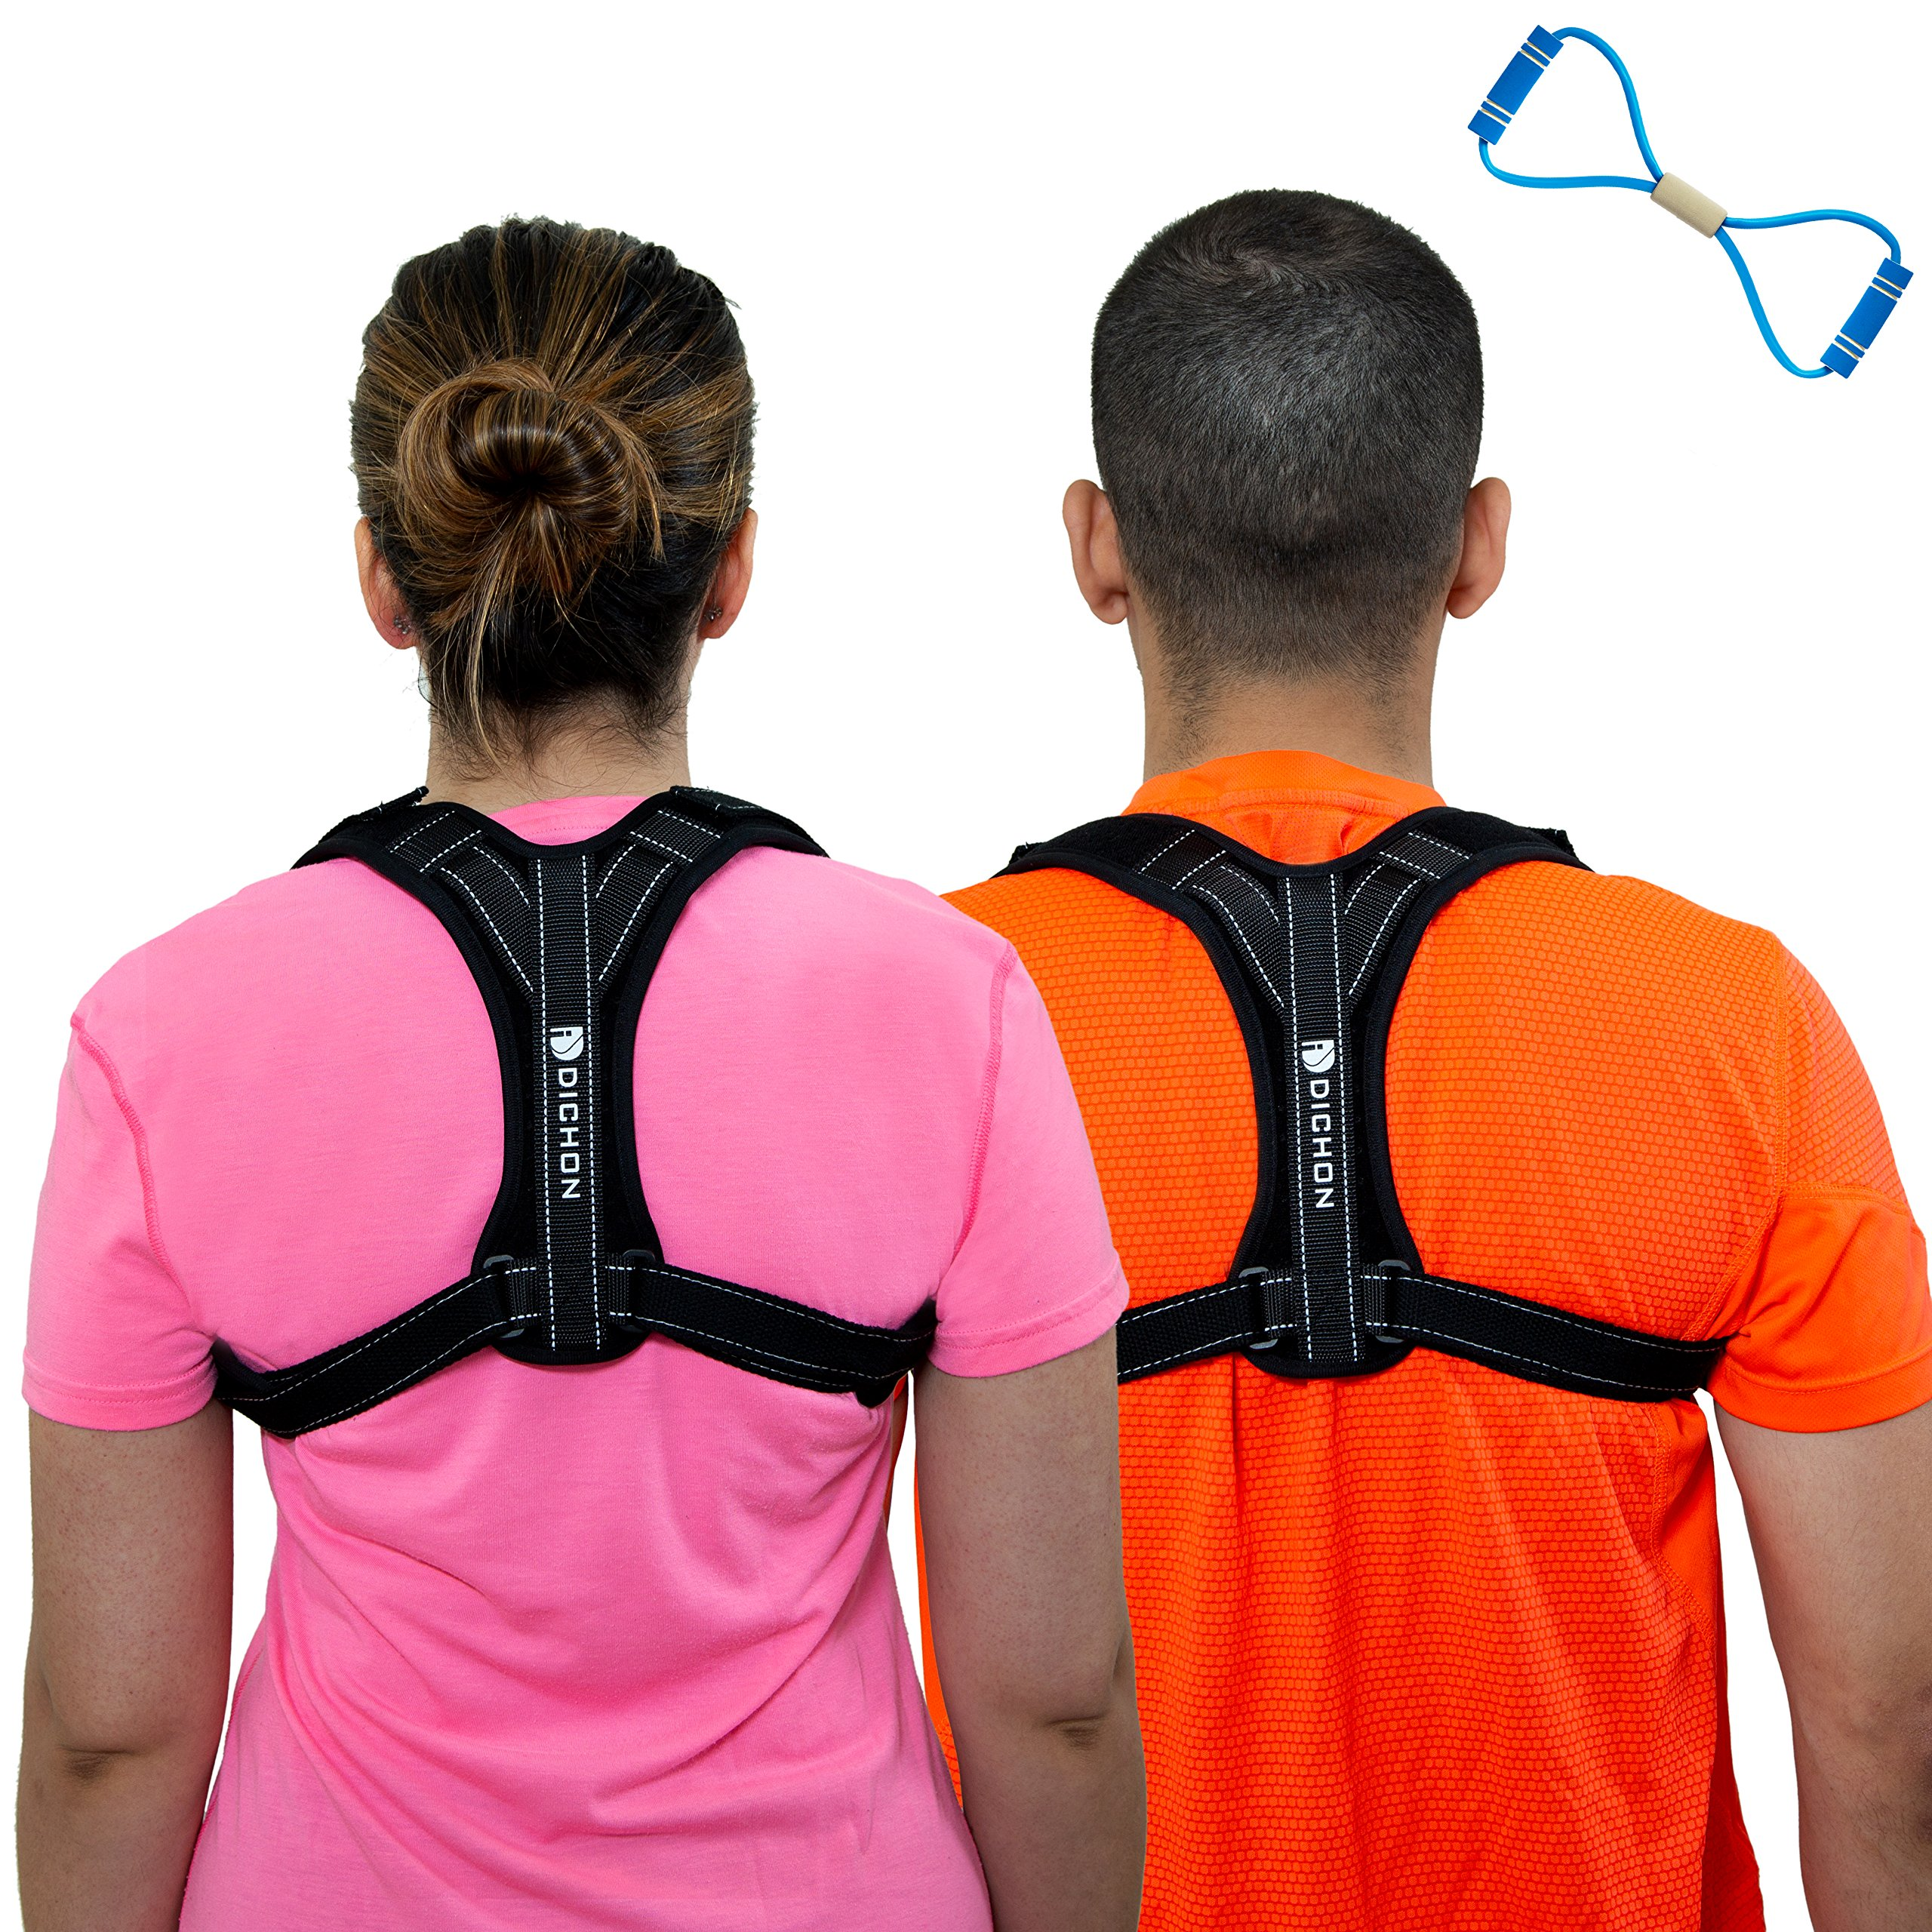 Dichon Innovations Posture Corrector Brace for Men and Women-Comfortable and Adjustable Clavicle Shoulder Support Complete with Underarm Pads and Yoga Strap, Discreet Design, Unisex Size by Dichon Innovations (Image #1)